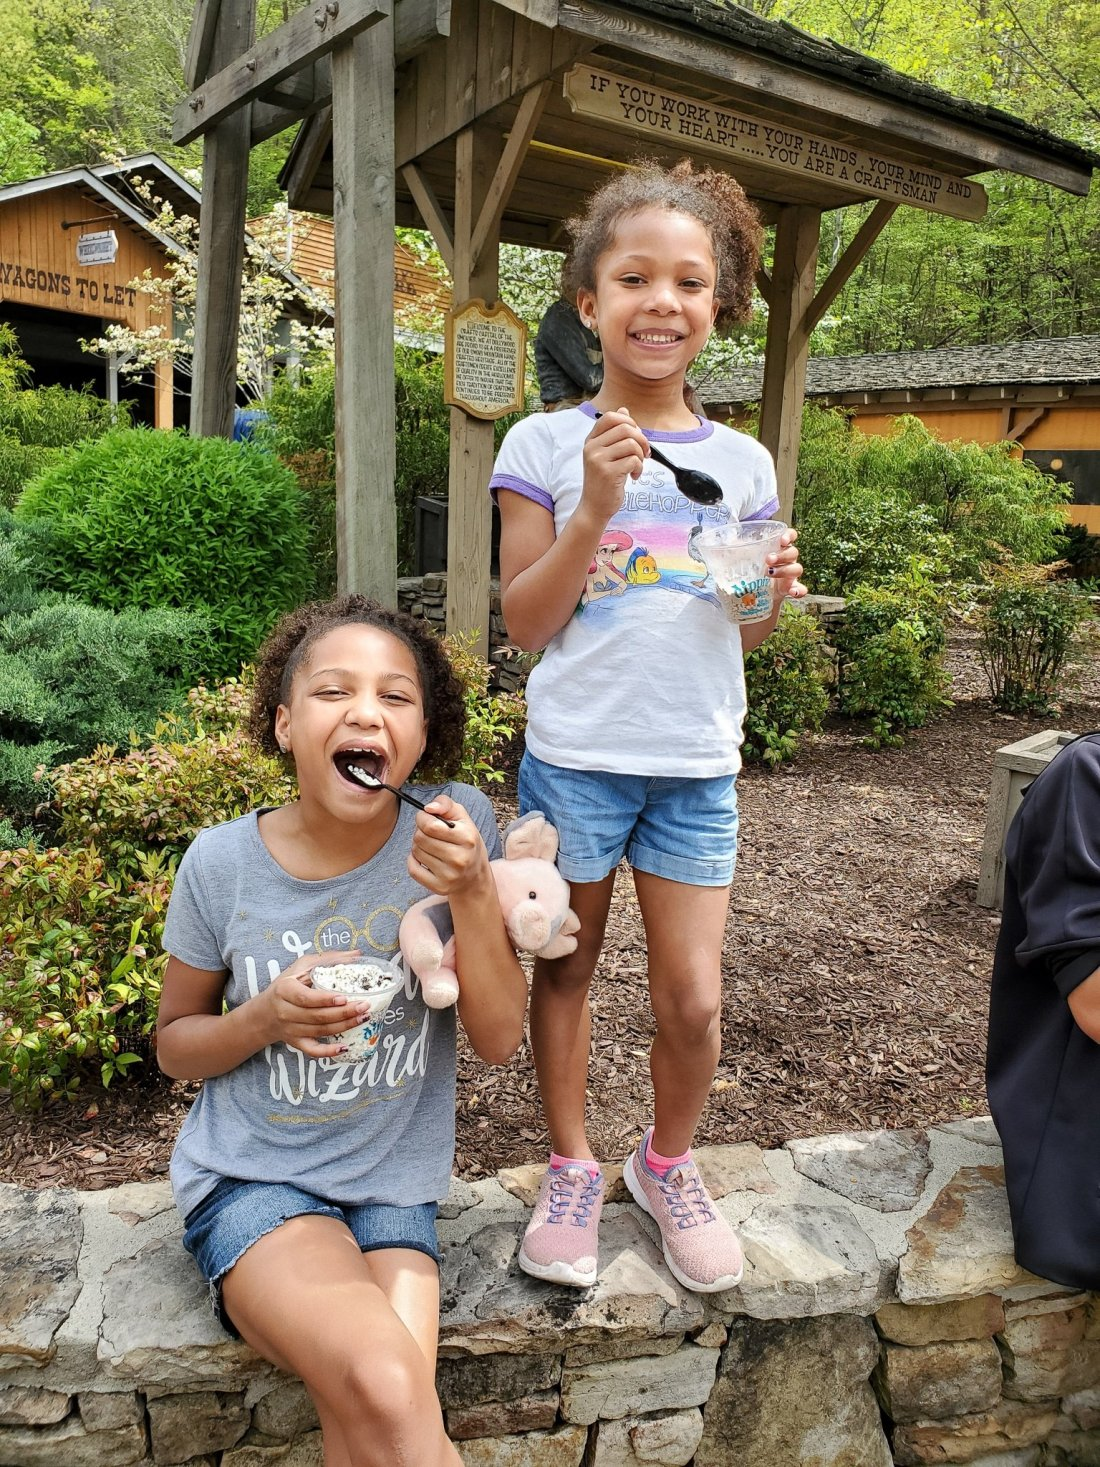 Girls Dippin Dots Dollywood. My family spent the day playing and eating at the Dollywood theme park, and we are happy to report we had a blast! Read all about our trip and learn why Dollwood is a must visit destination while you are in Pigeon Forge, TN.